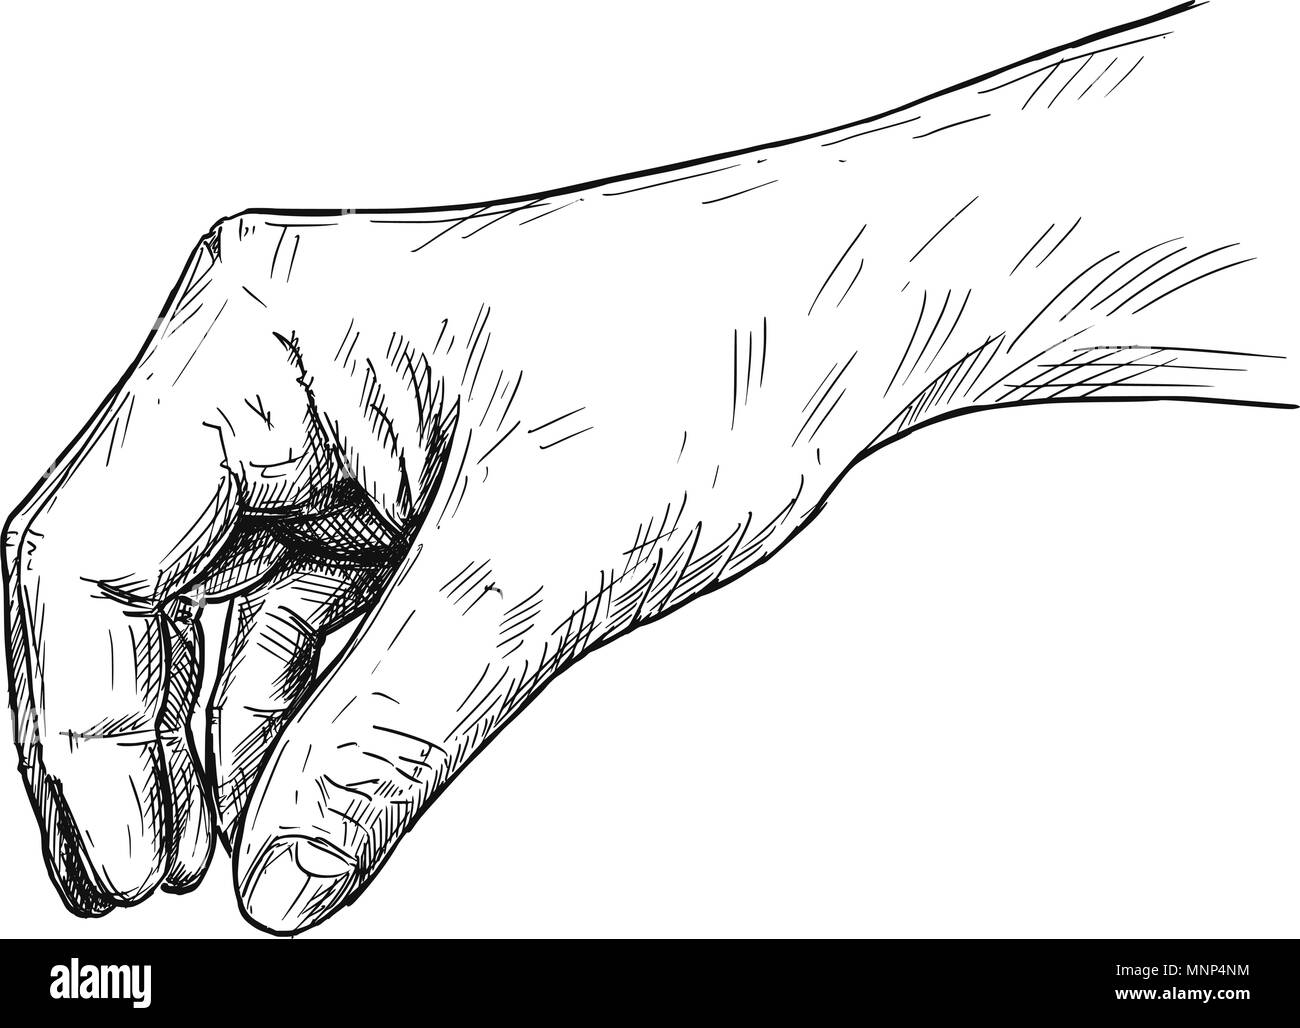 Vector Artistic Illustration or Drawing of Hand Holding Something Small Between Pinch Fingers Stock Vector